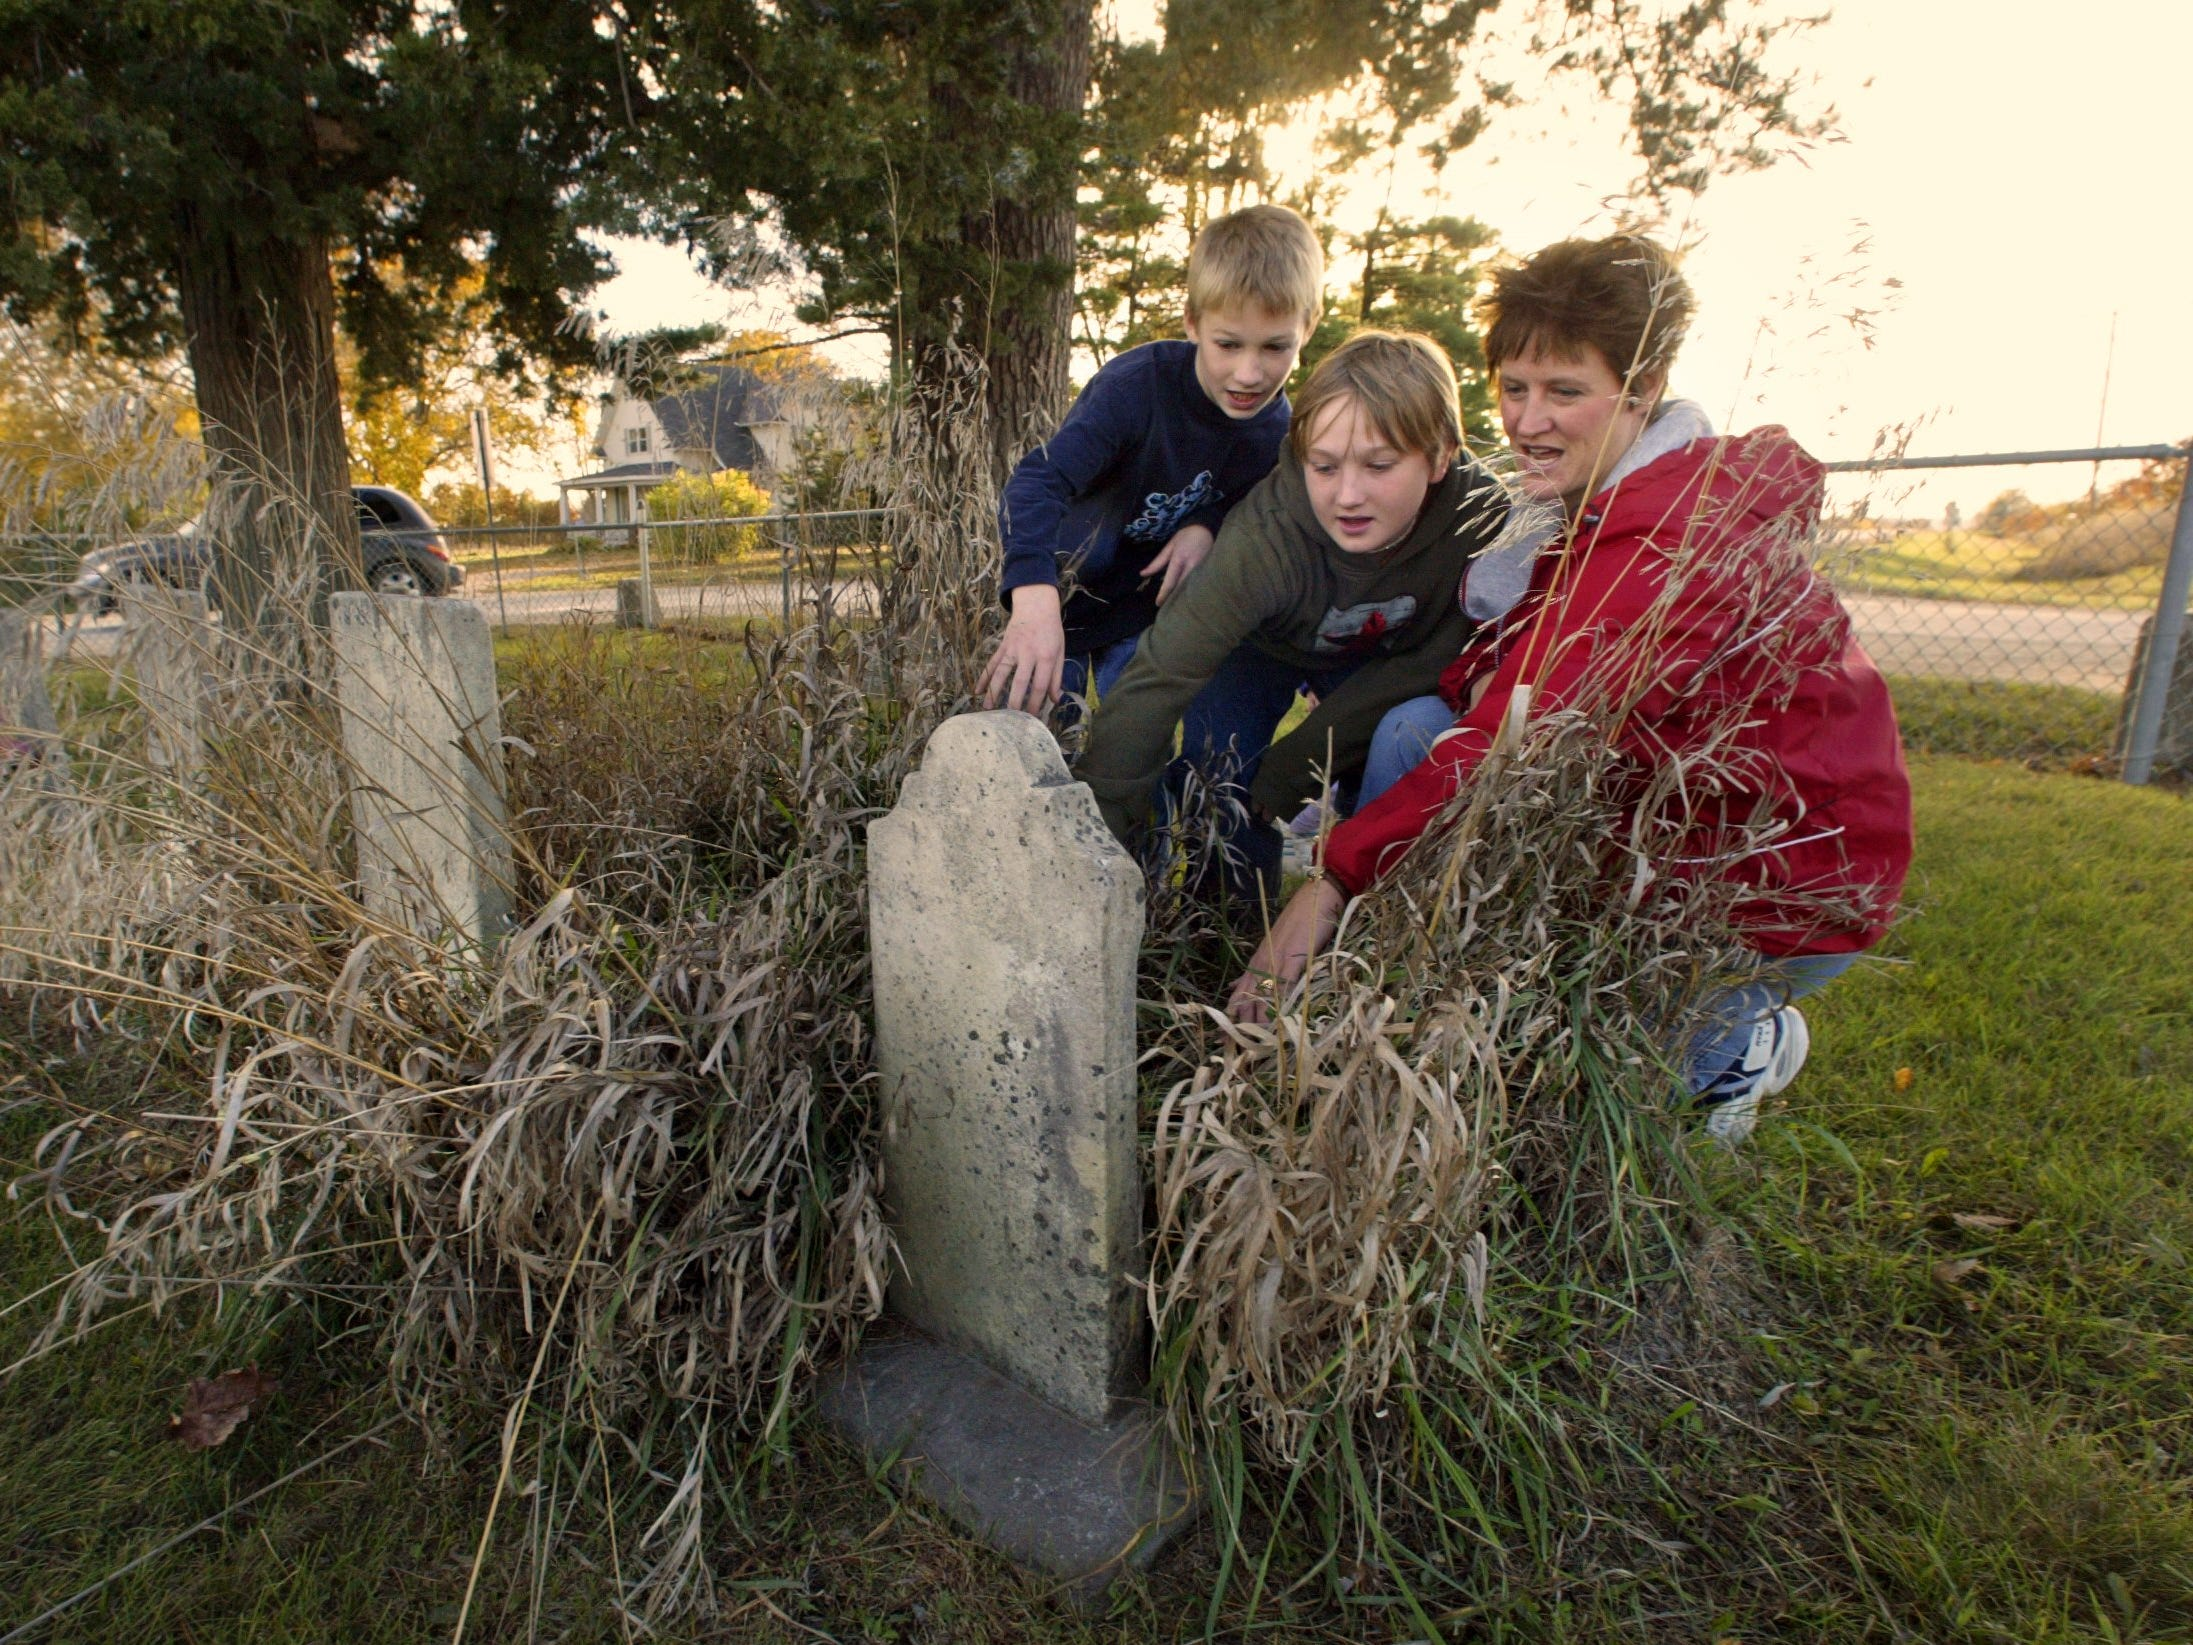 From 2004: Stephanie Watson and her sons, Jeremy, 8, left, and Carter, 11, check out old headstones at the Huston Cemetery near their home. The pioneer cemetery is in the middle of the intersection of 88th Street and Mills Civic Parkway in Dallas County, just minutes from Jordan Creek Town Center.